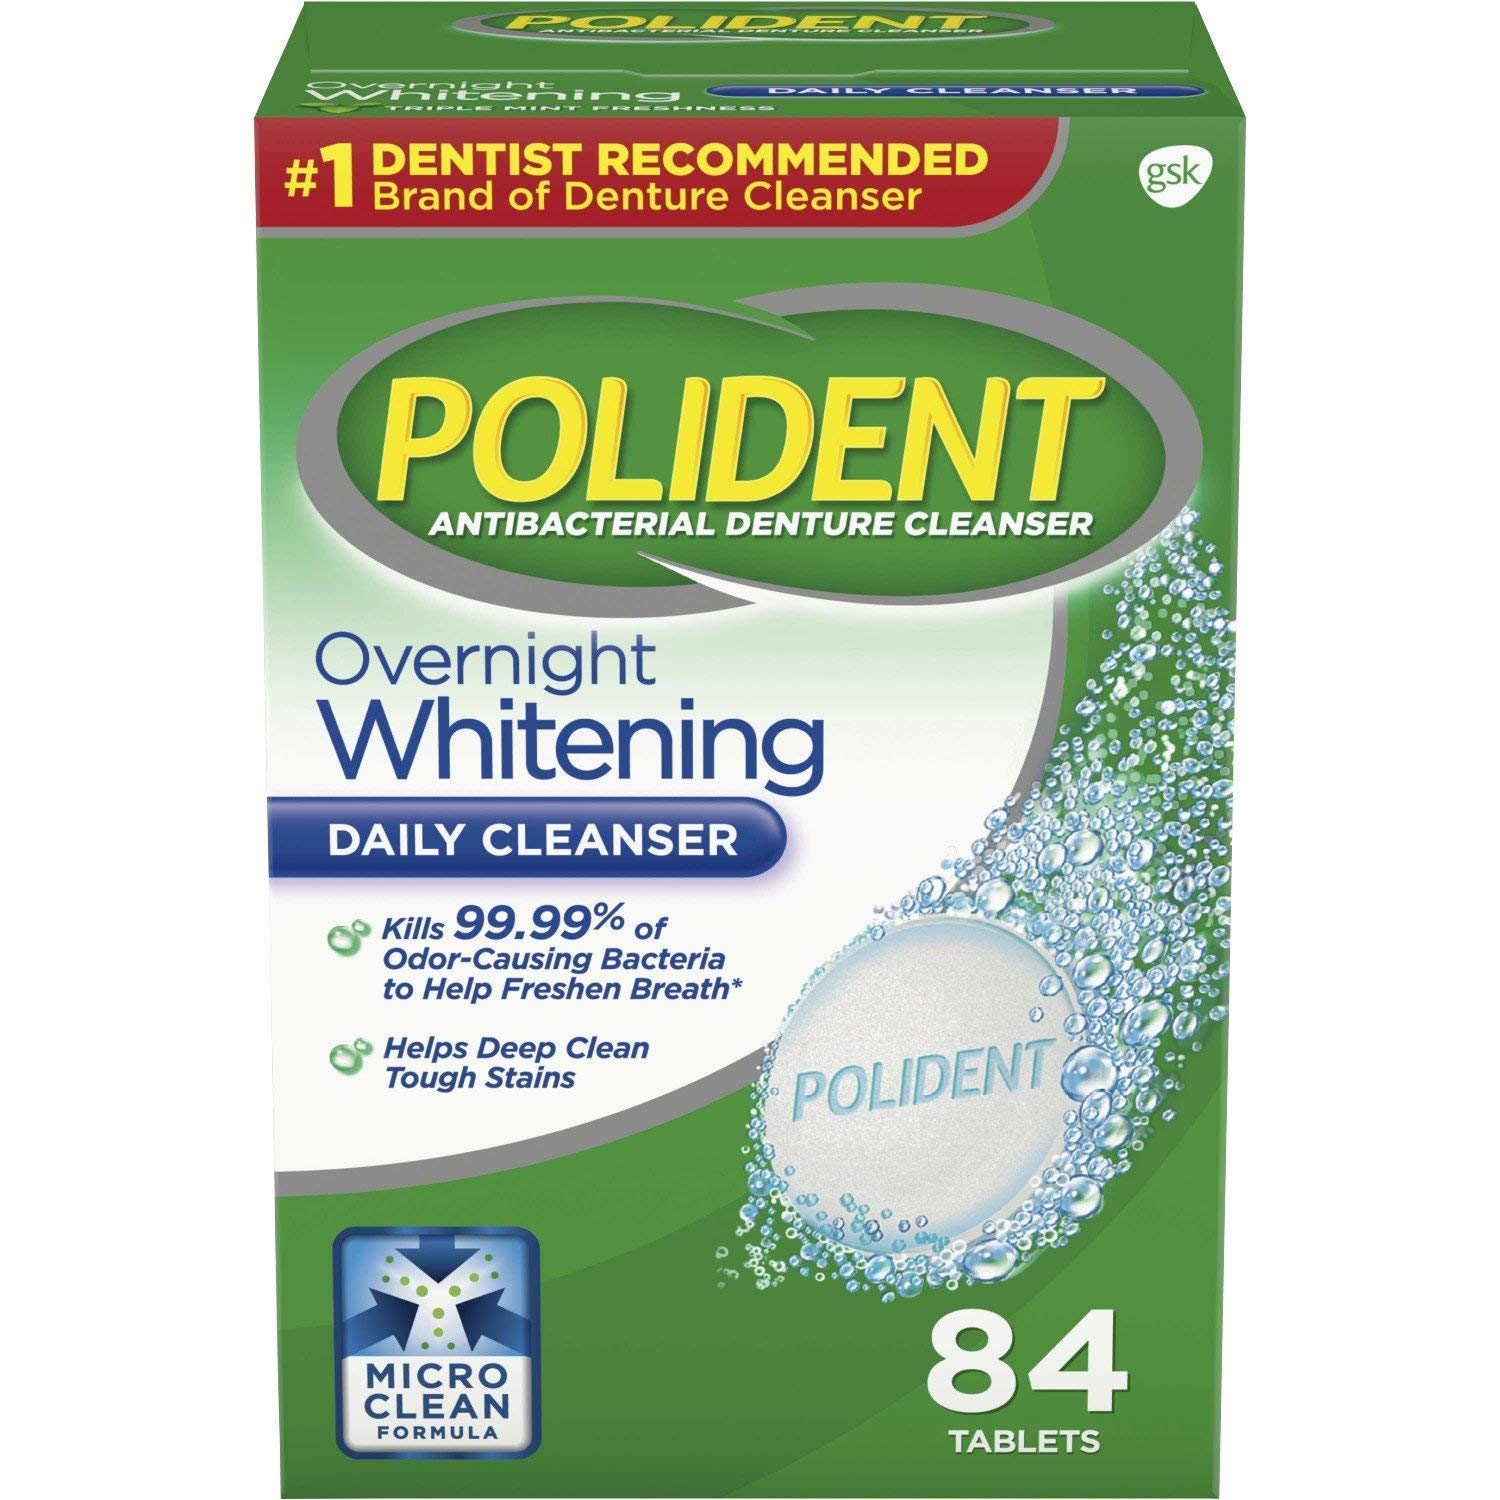 Polident Overnight Whitening Tablets - 84 ct, Pack of 5